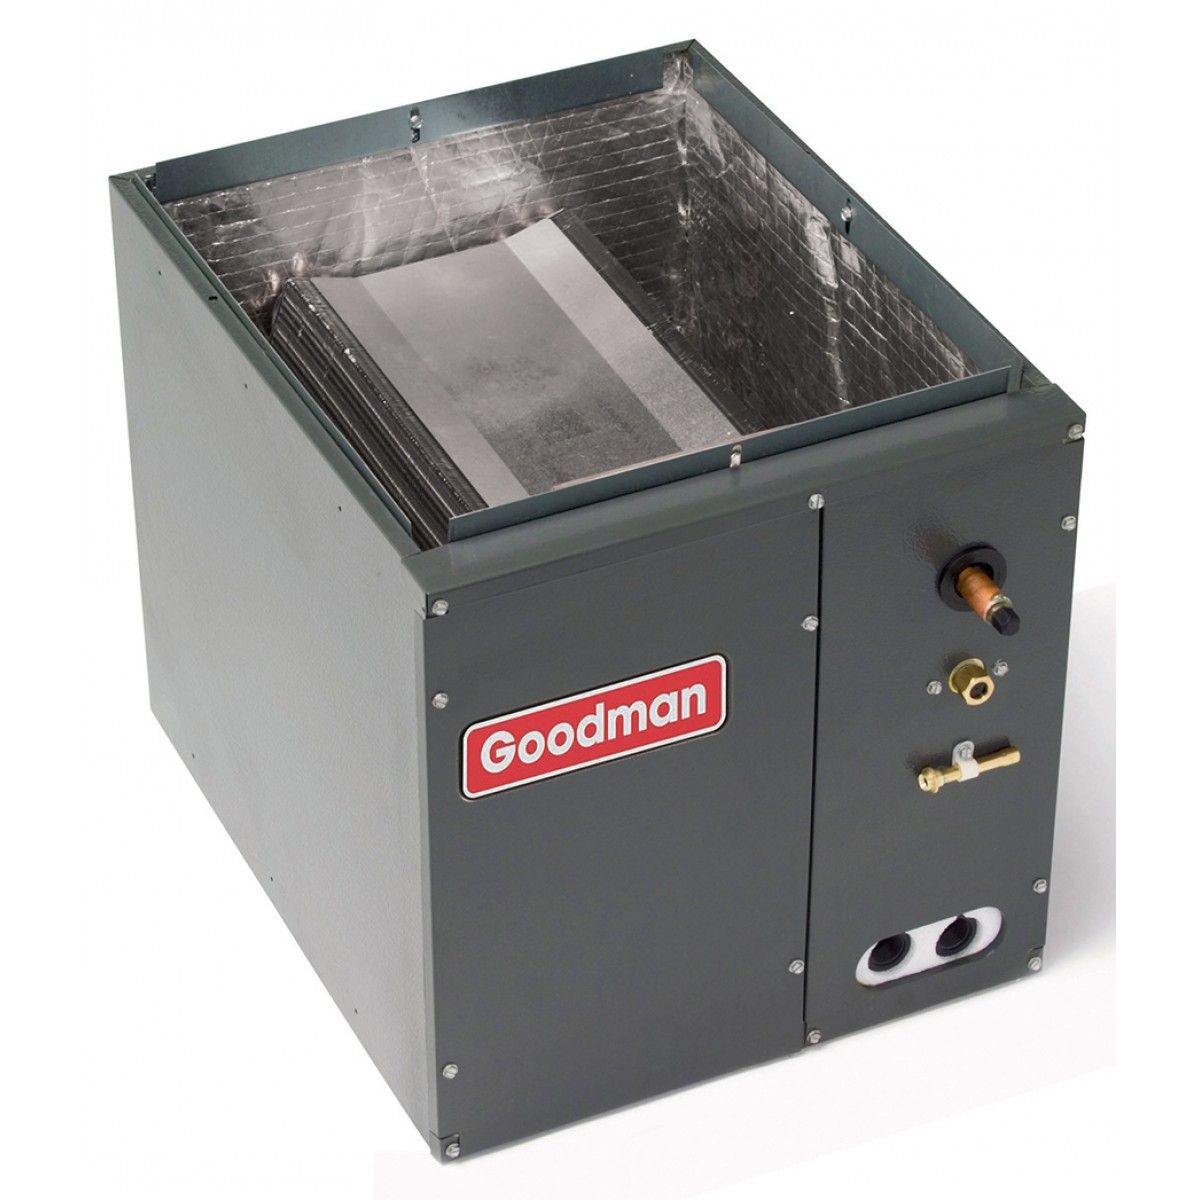 #A5262C 2.5 Ton Goodman CAPF Indoor Evaporator Coil Highly Rated 3359 Heat Pump Evaporator Coil wallpapers with 1200x1200 px on helpvideos.info - Air Conditioners, Air Coolers and more